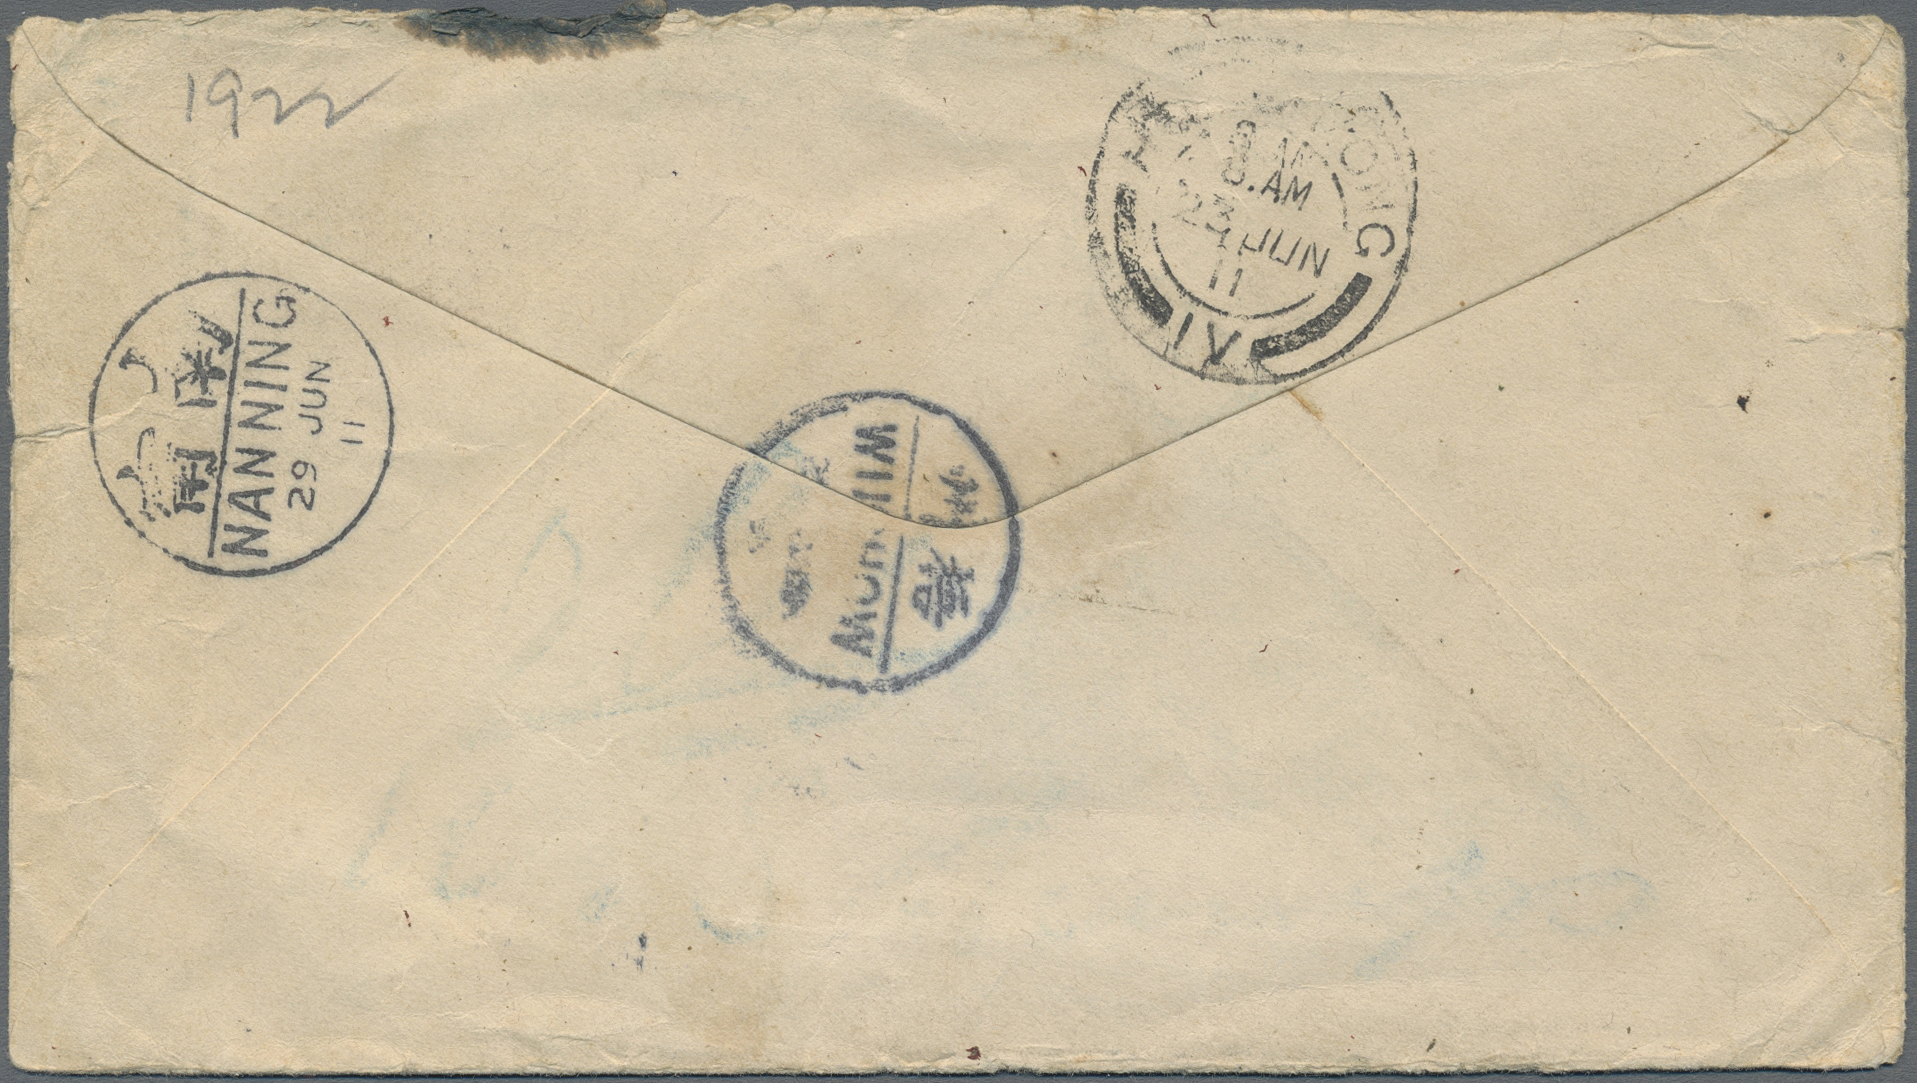 Lot 04023 - China - Incoming Mail  -  Auktionshaus Christoph Gärtner GmbH & Co. KG Special Auction 26.- 28. May 2020